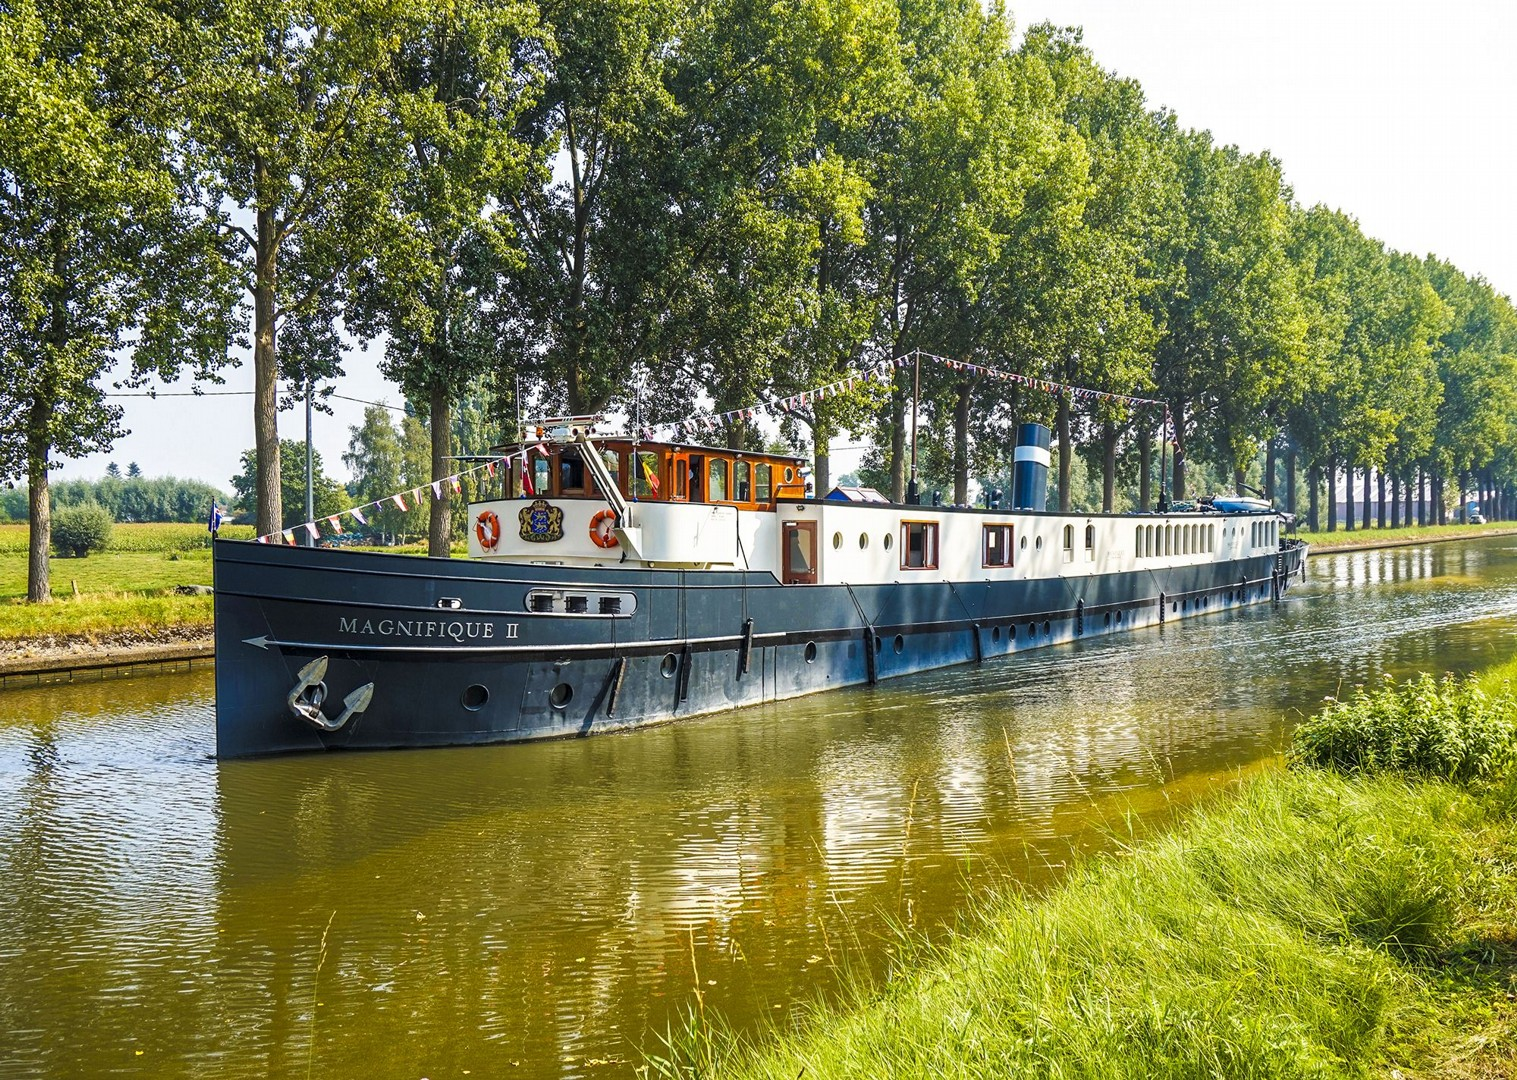 comfortable-luxury-boat-accommodation-cycling-tour-saddle-skedaddle.jpg - Holland and Belgium - Bruges to Amsterdam - Premium Bike and Barge Holiday - Leisure Cycling